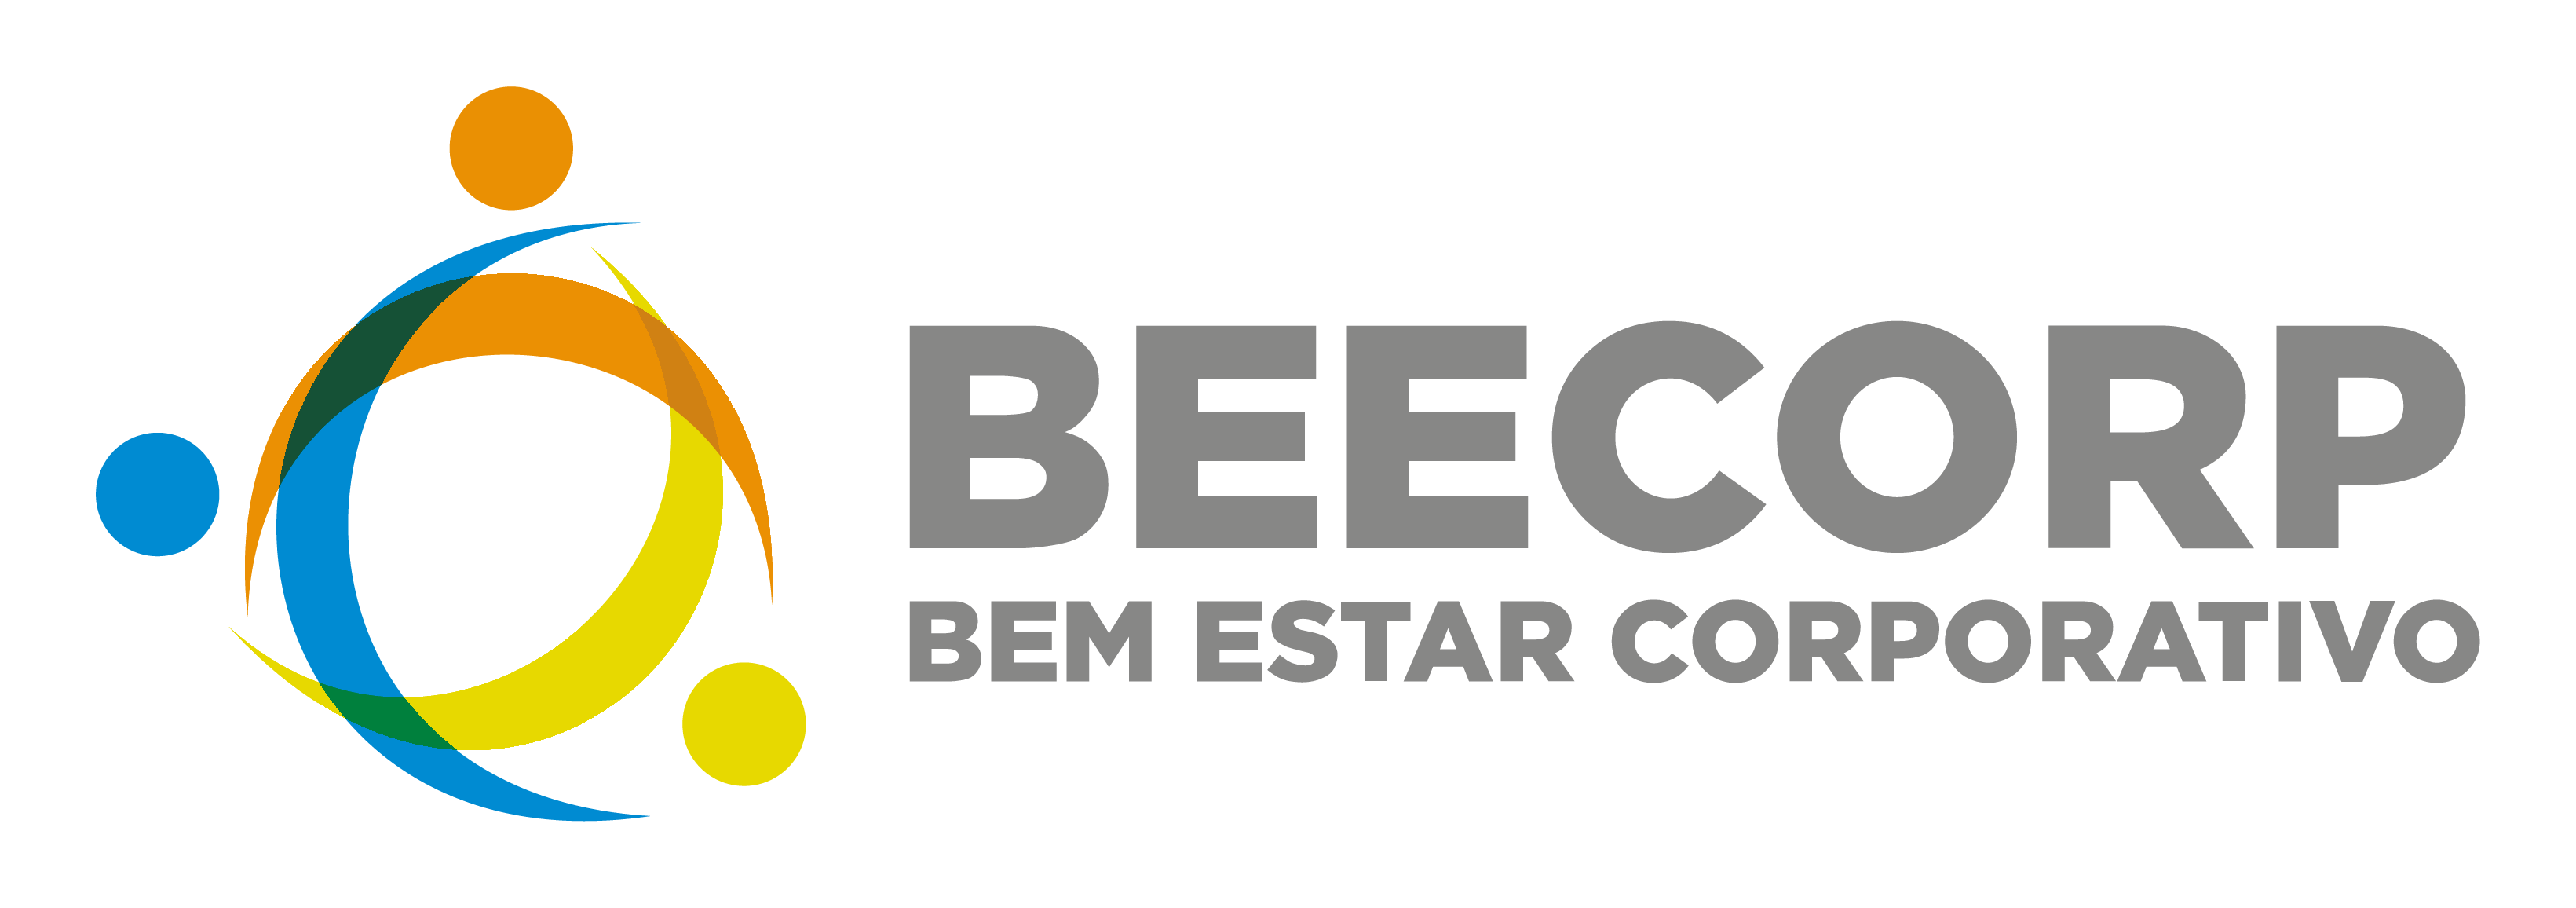 https://beecorp.com.br/